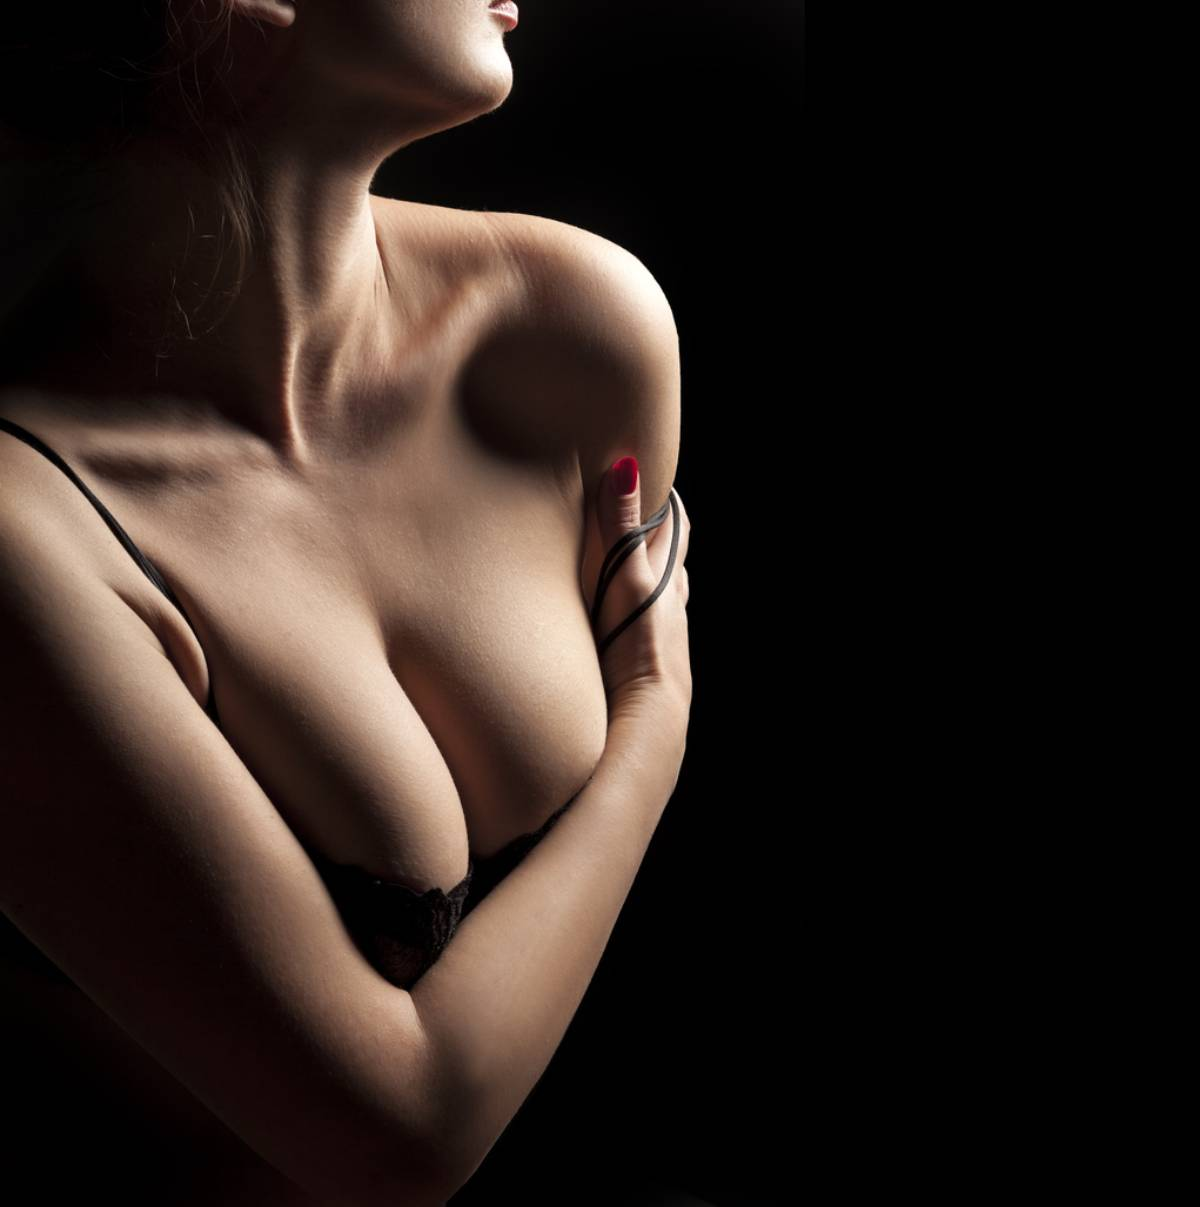 Woman in shadow with breast asymmetry.